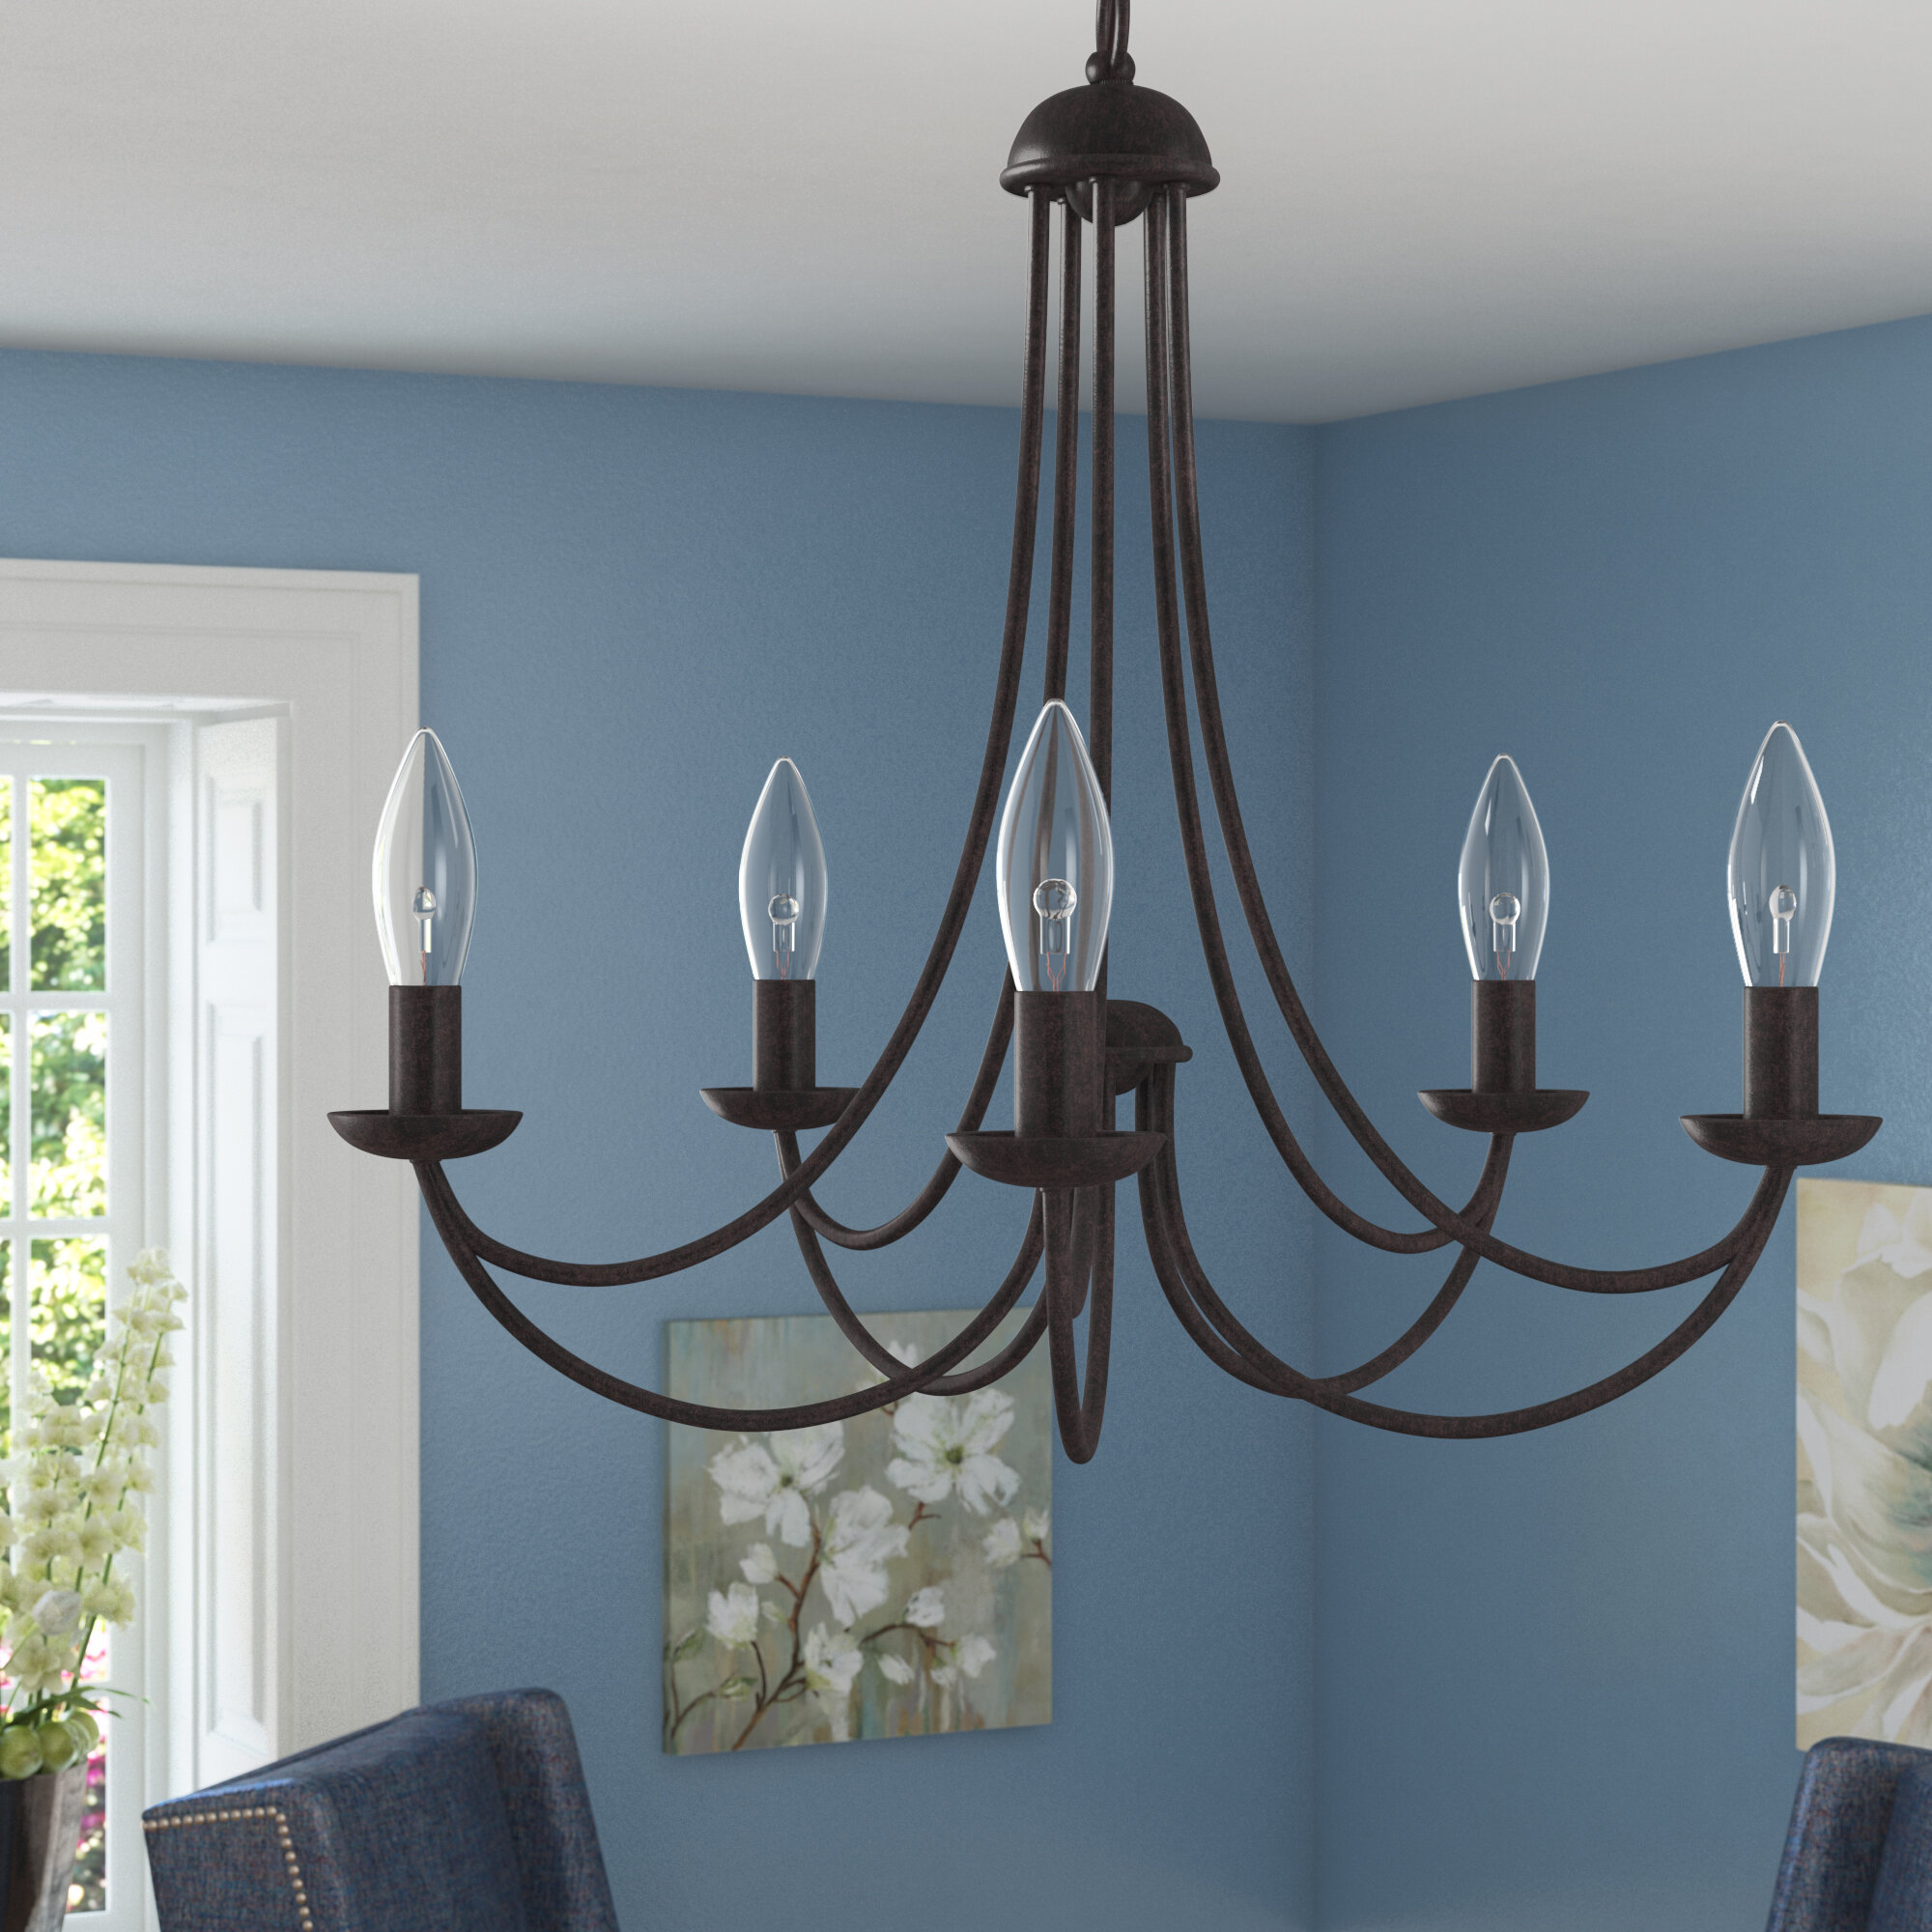 fixture chandelier lighting blakely cr capital style lantern company collection room